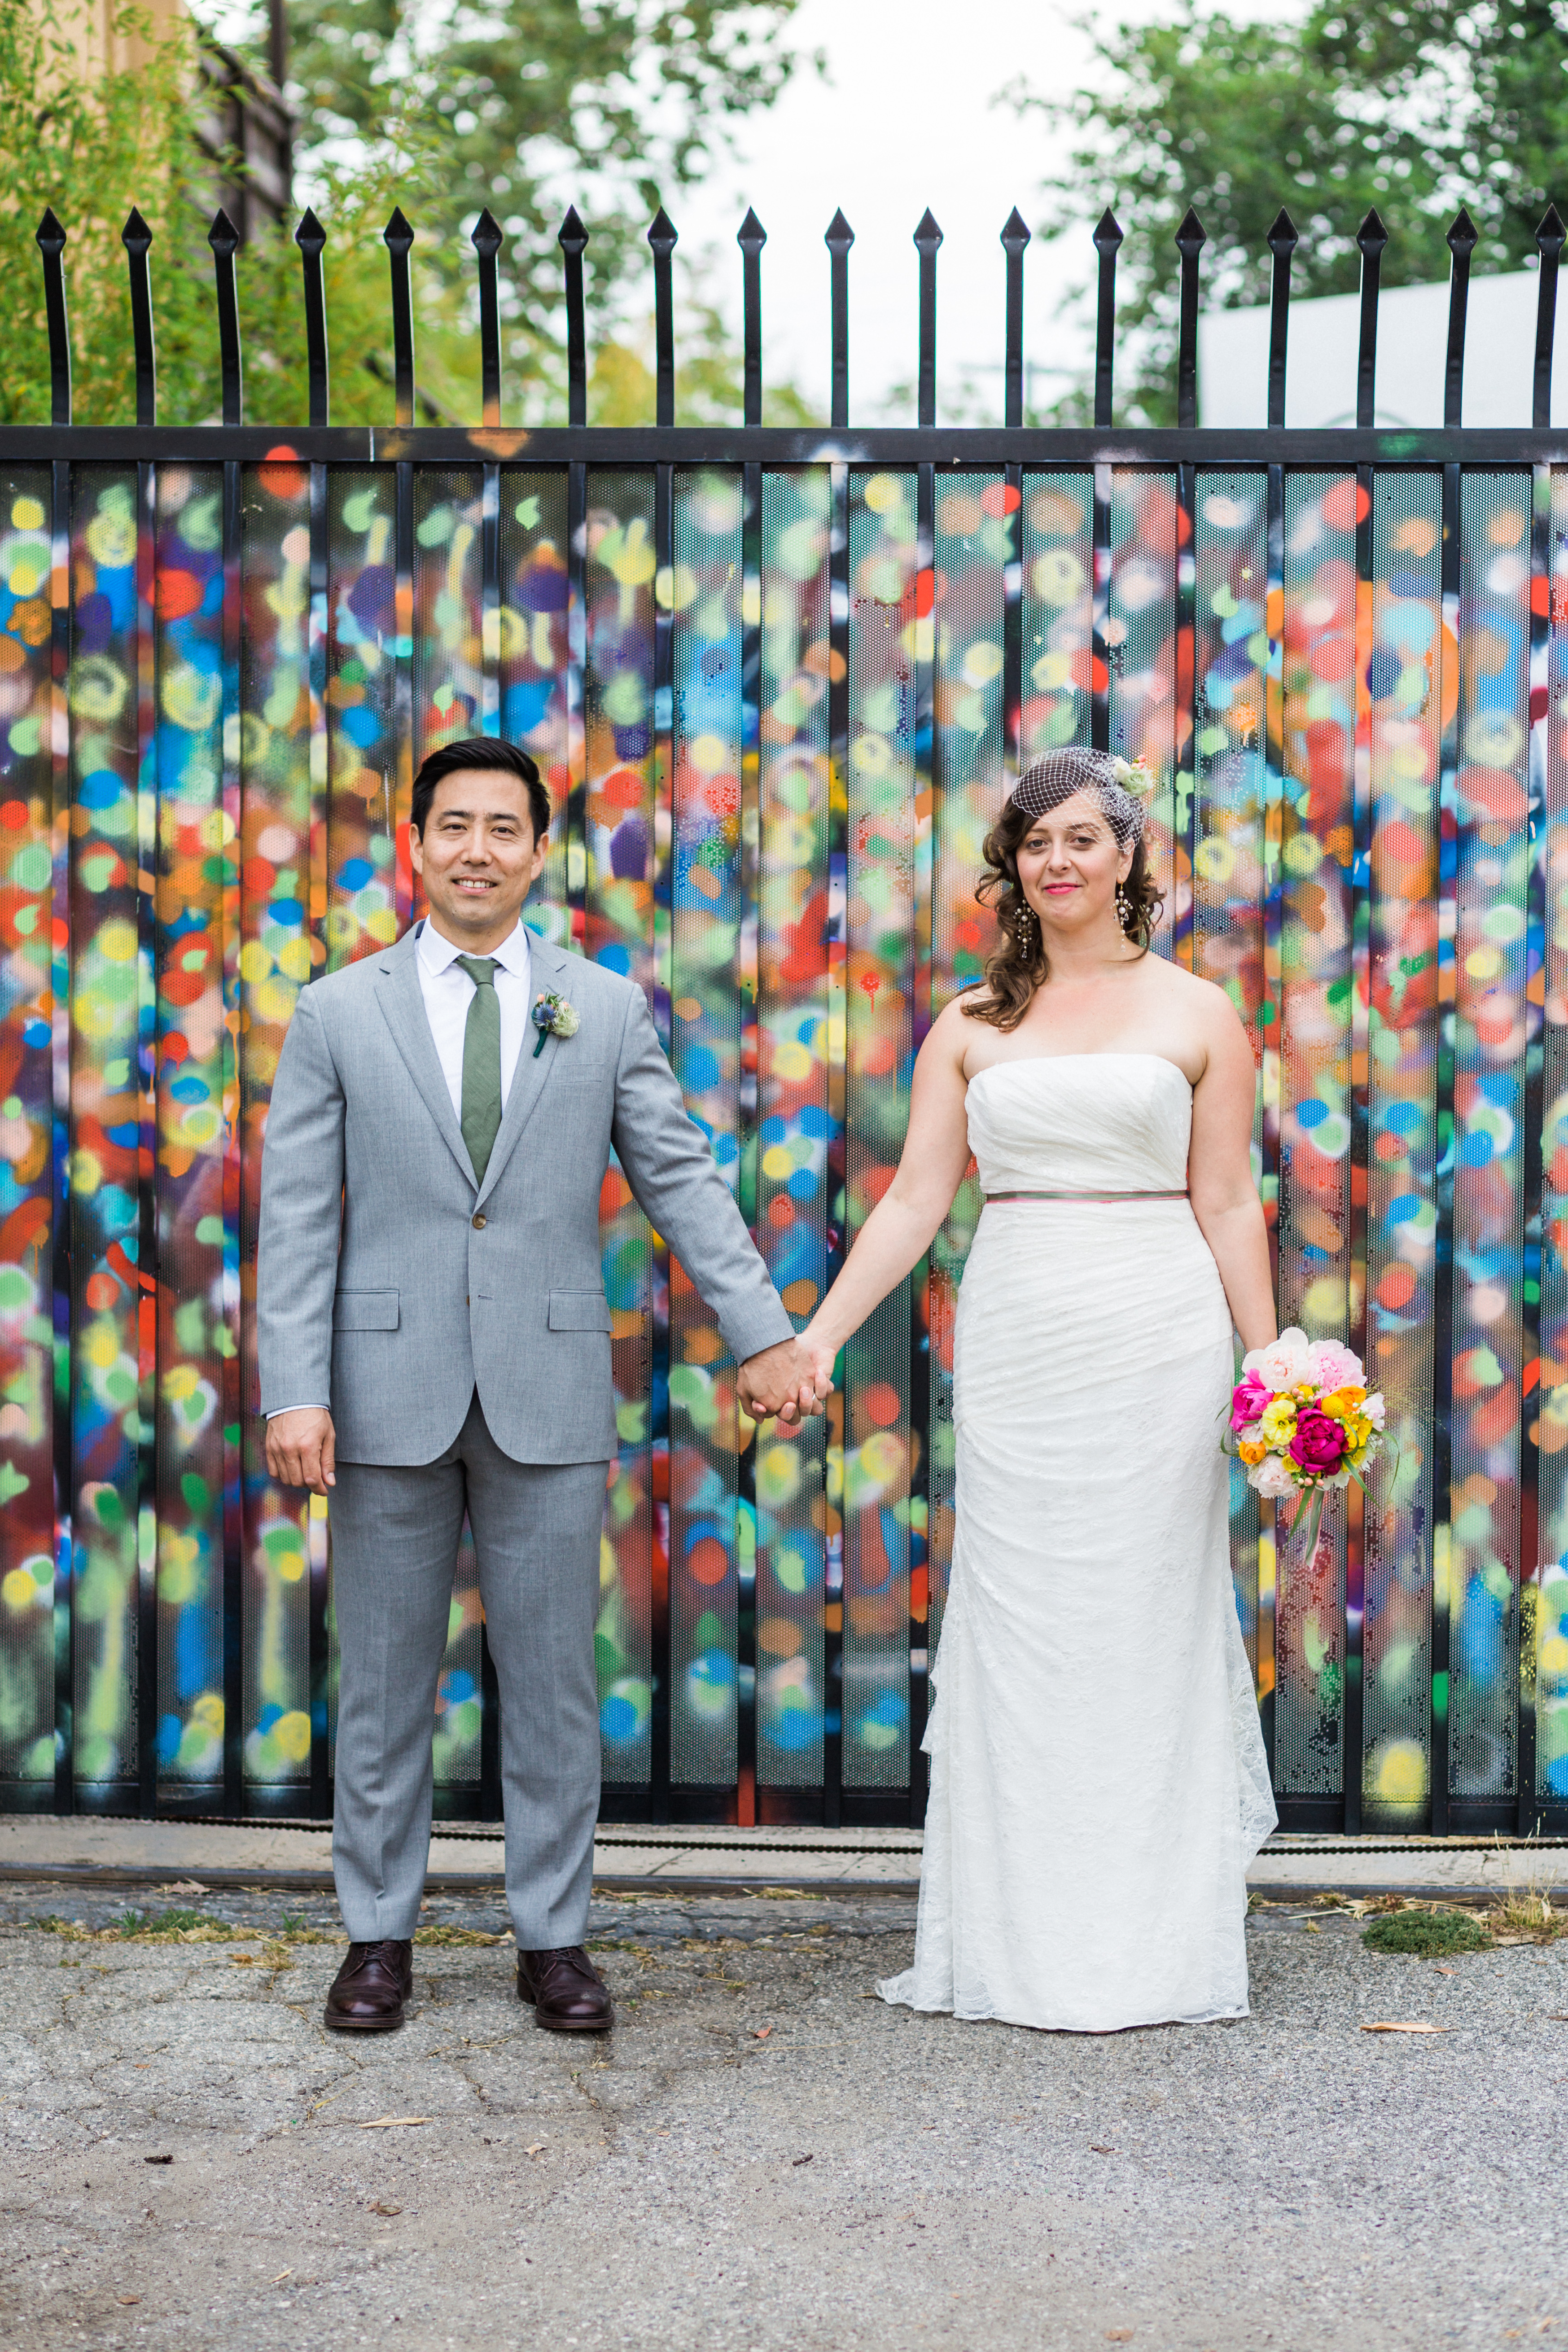 Modern, romantic, colorful, offbeat wedding photography in Los Angeles